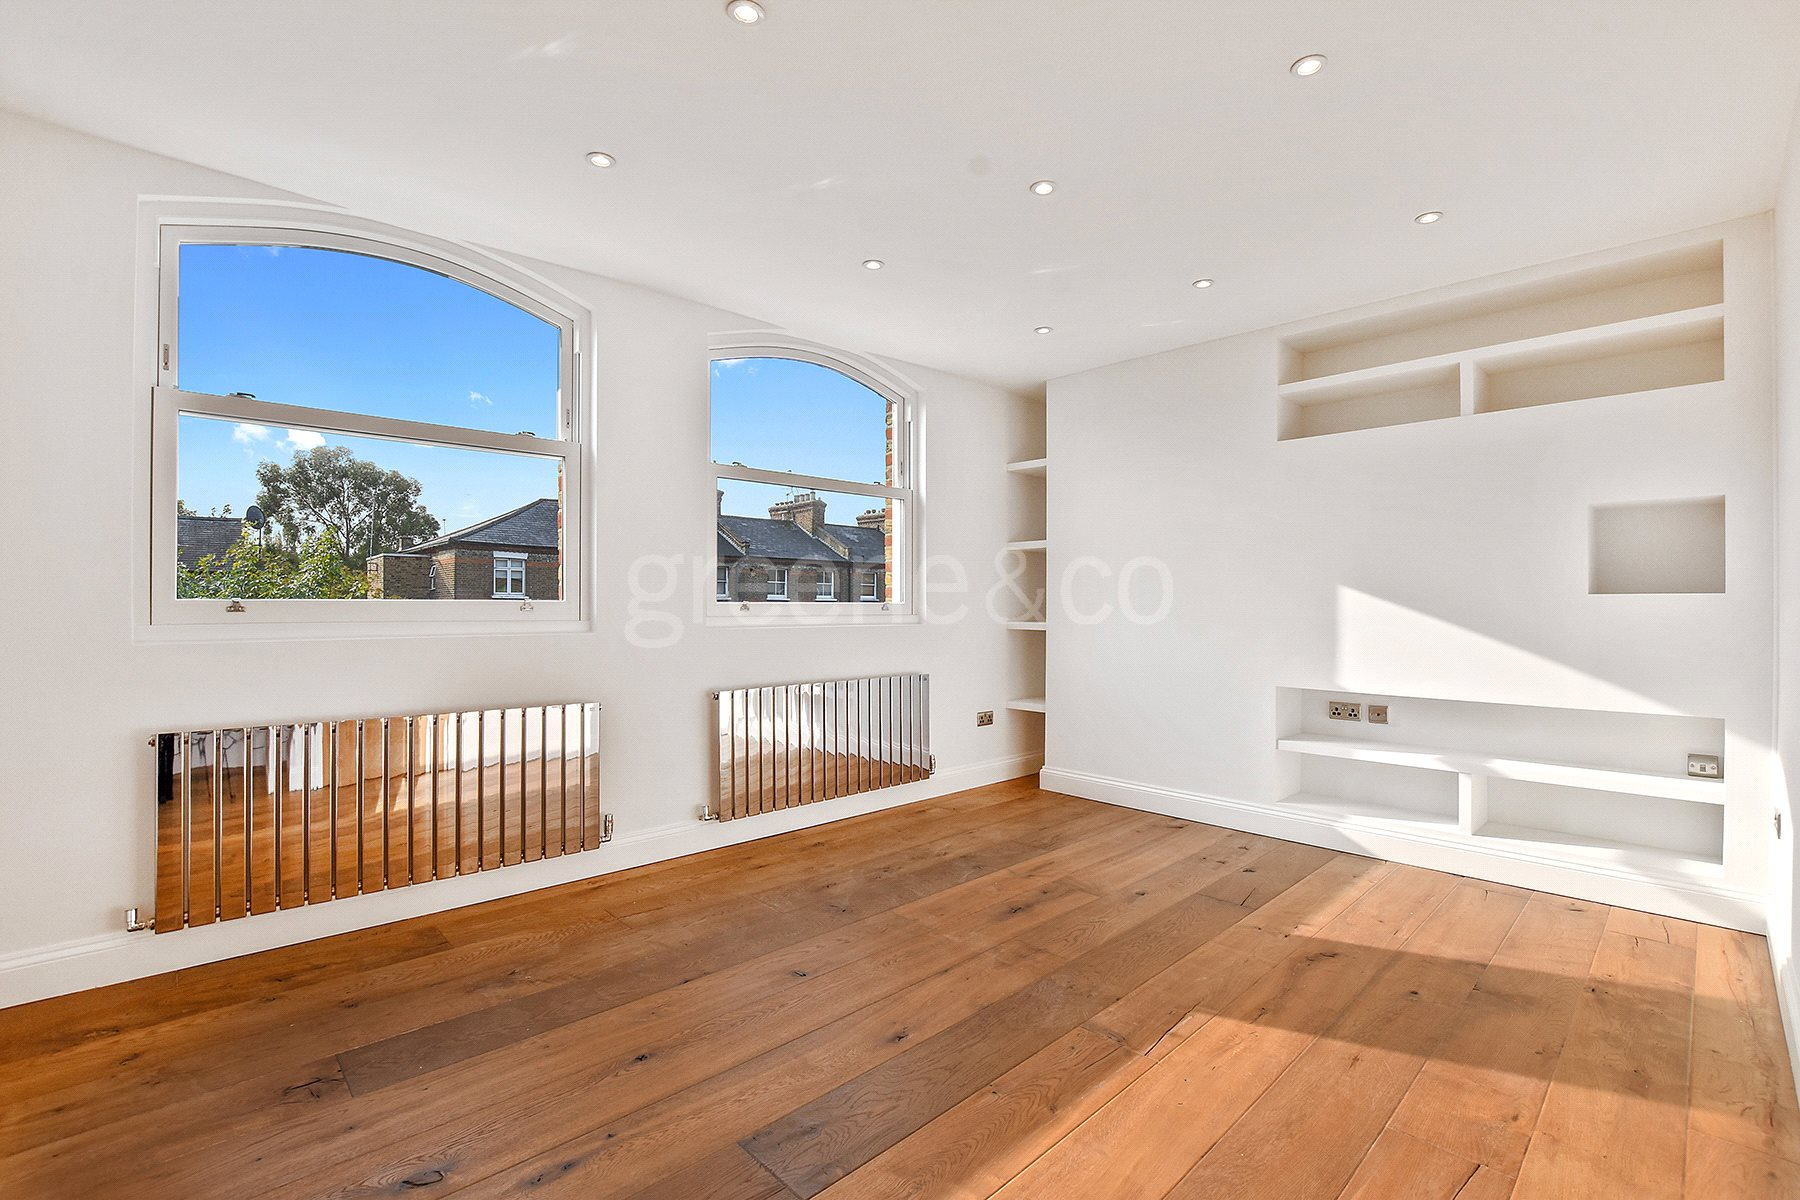 2 Bedrooms Flat for sale in Tufnell Park Road, Tufnell Park, London, N7